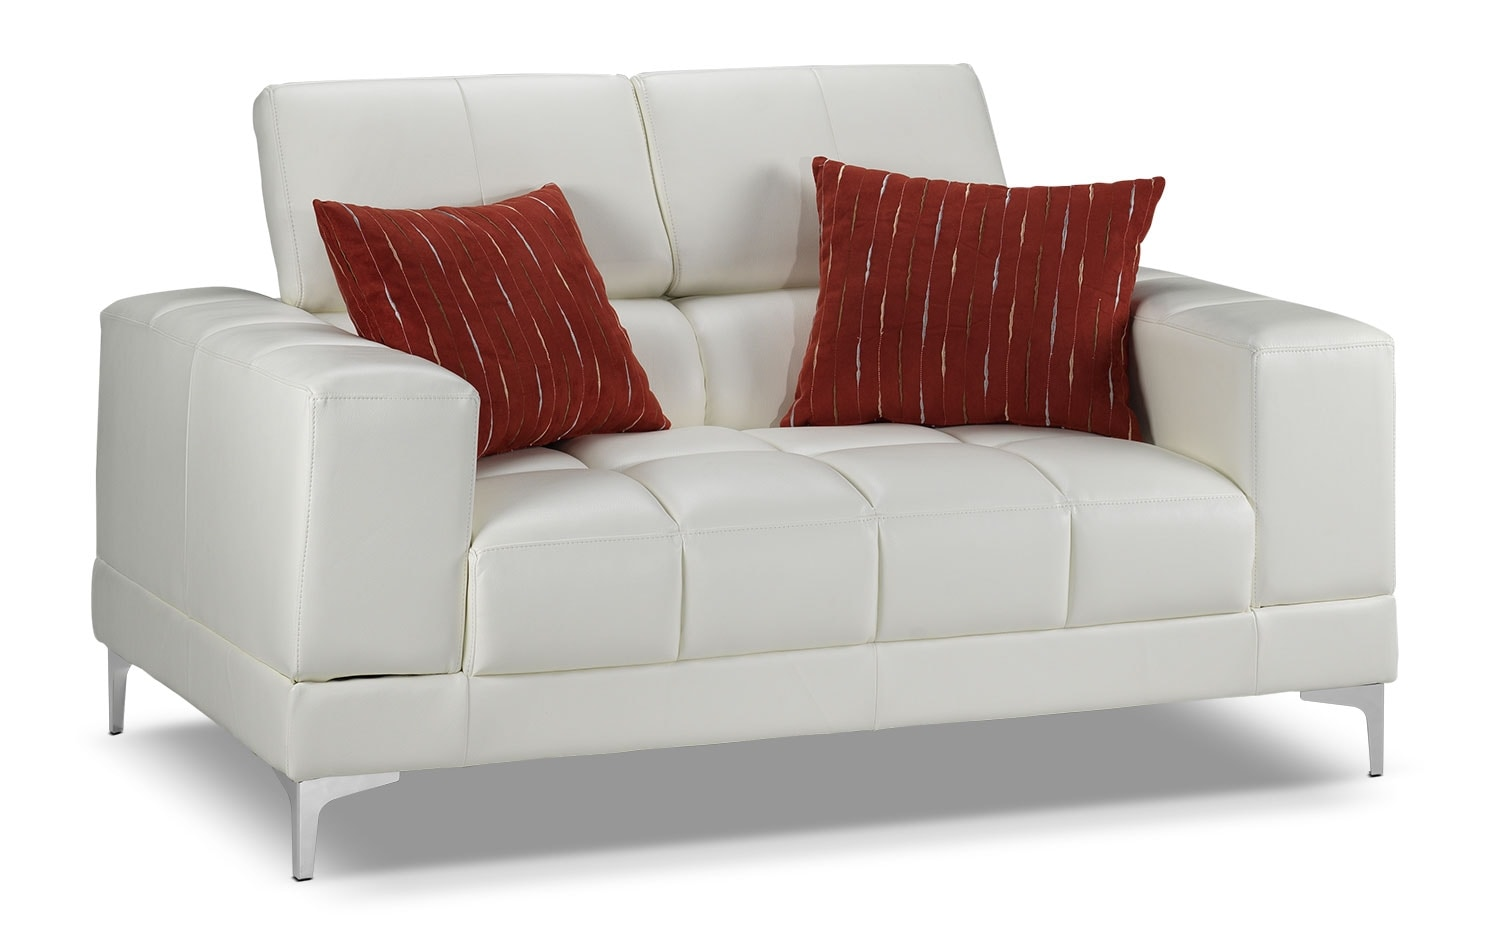 Living Room Furniture - Bel-Air Loveseat - White